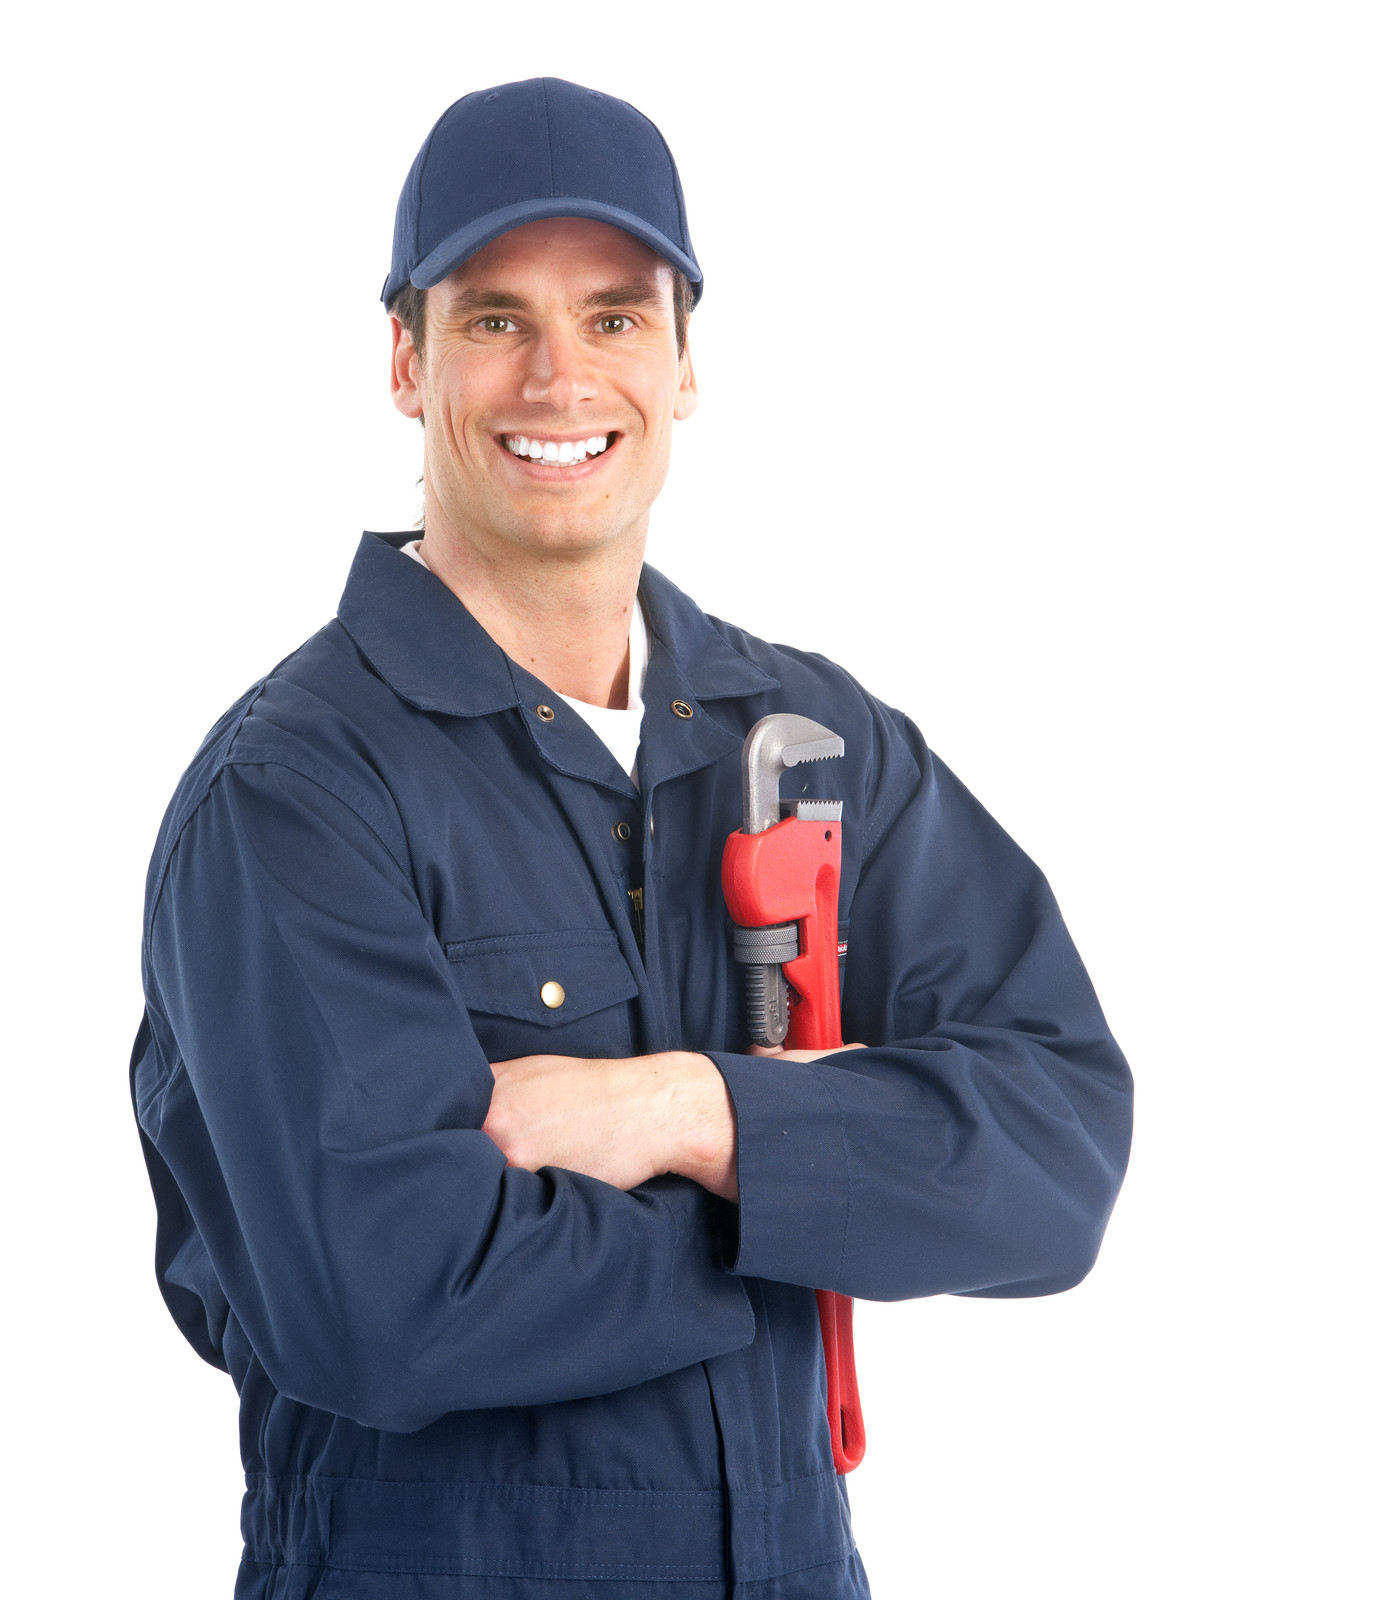 A licensed 24 hour plumber in Summerlin, NV, are right down the road from you.